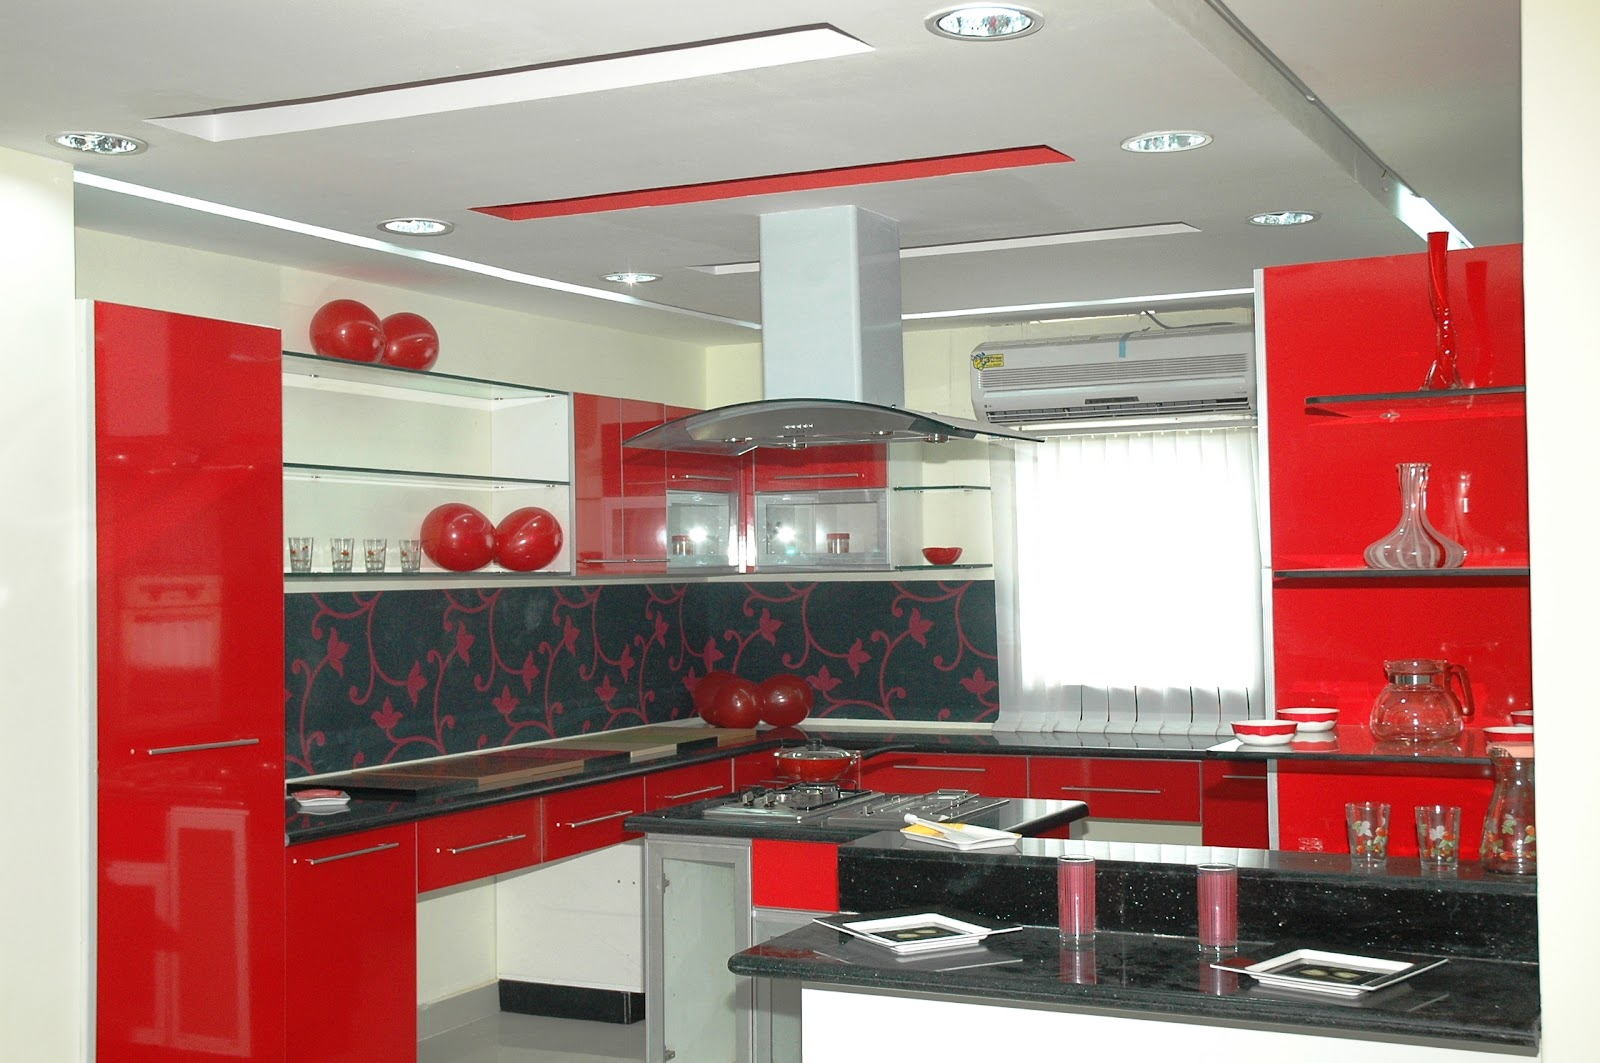 in Chennai: Image gallery for interior, modular kitchen, and painting